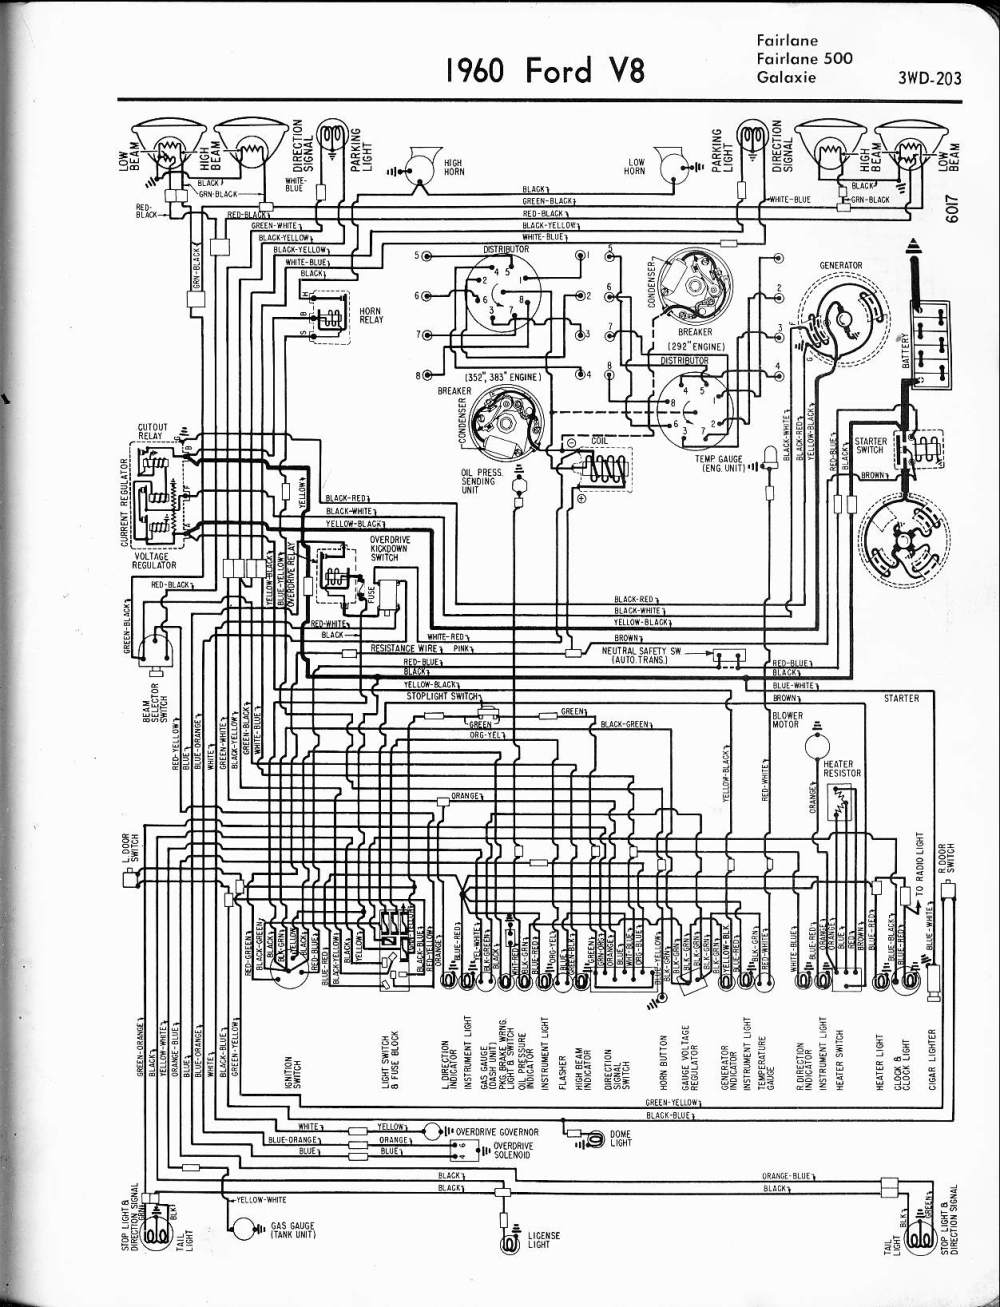 medium resolution of 1960 ford f100 wiring schema diagram database mix 1960 ford f100 wiring wiring diagram article 1960 1959 ford f100 headlight switch